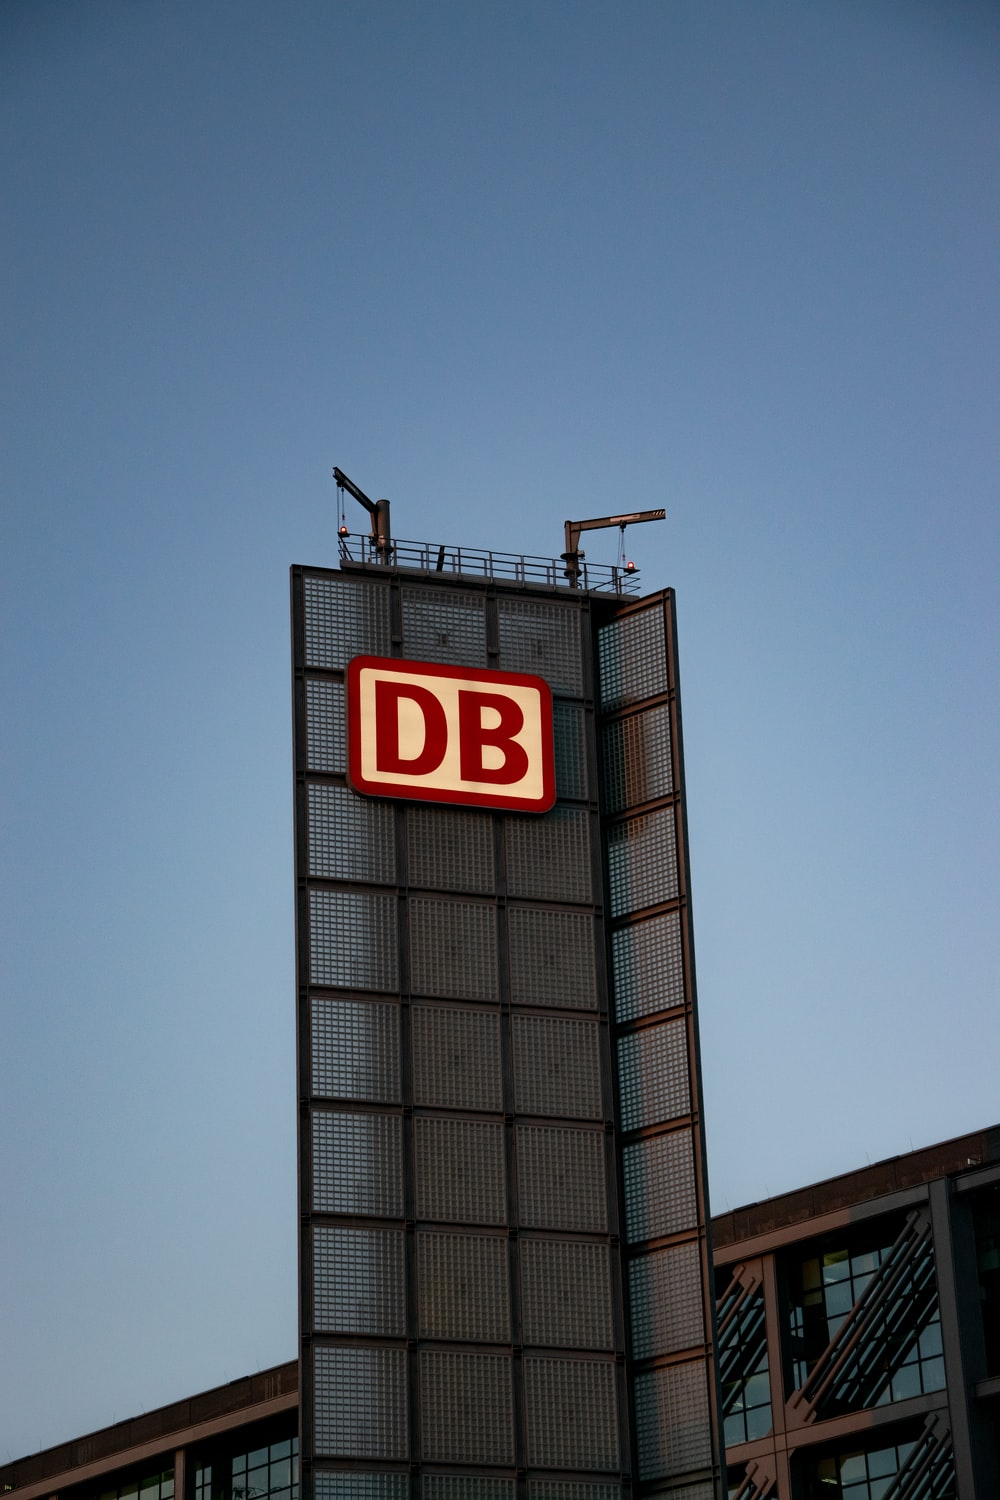 red and white DB signage